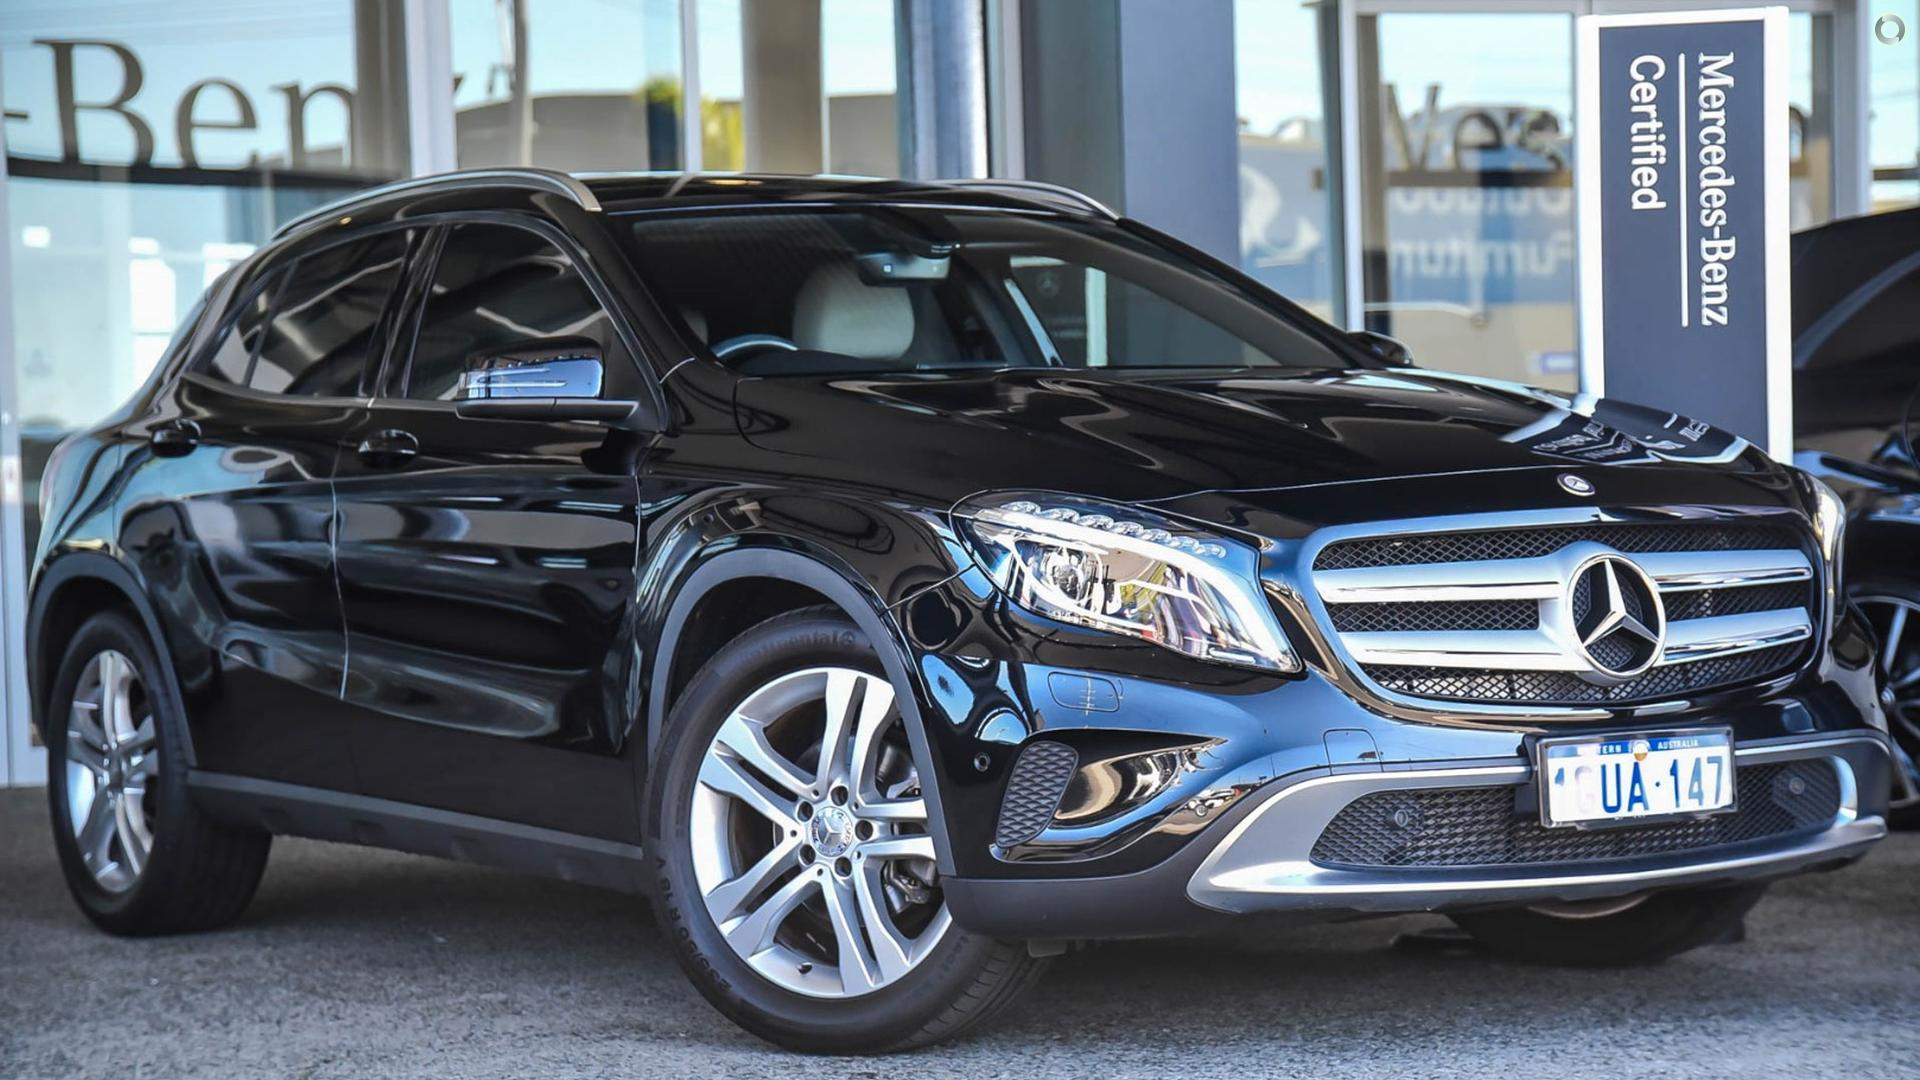 2014 Mercedes-Benz GLA 200 CDI Wagon